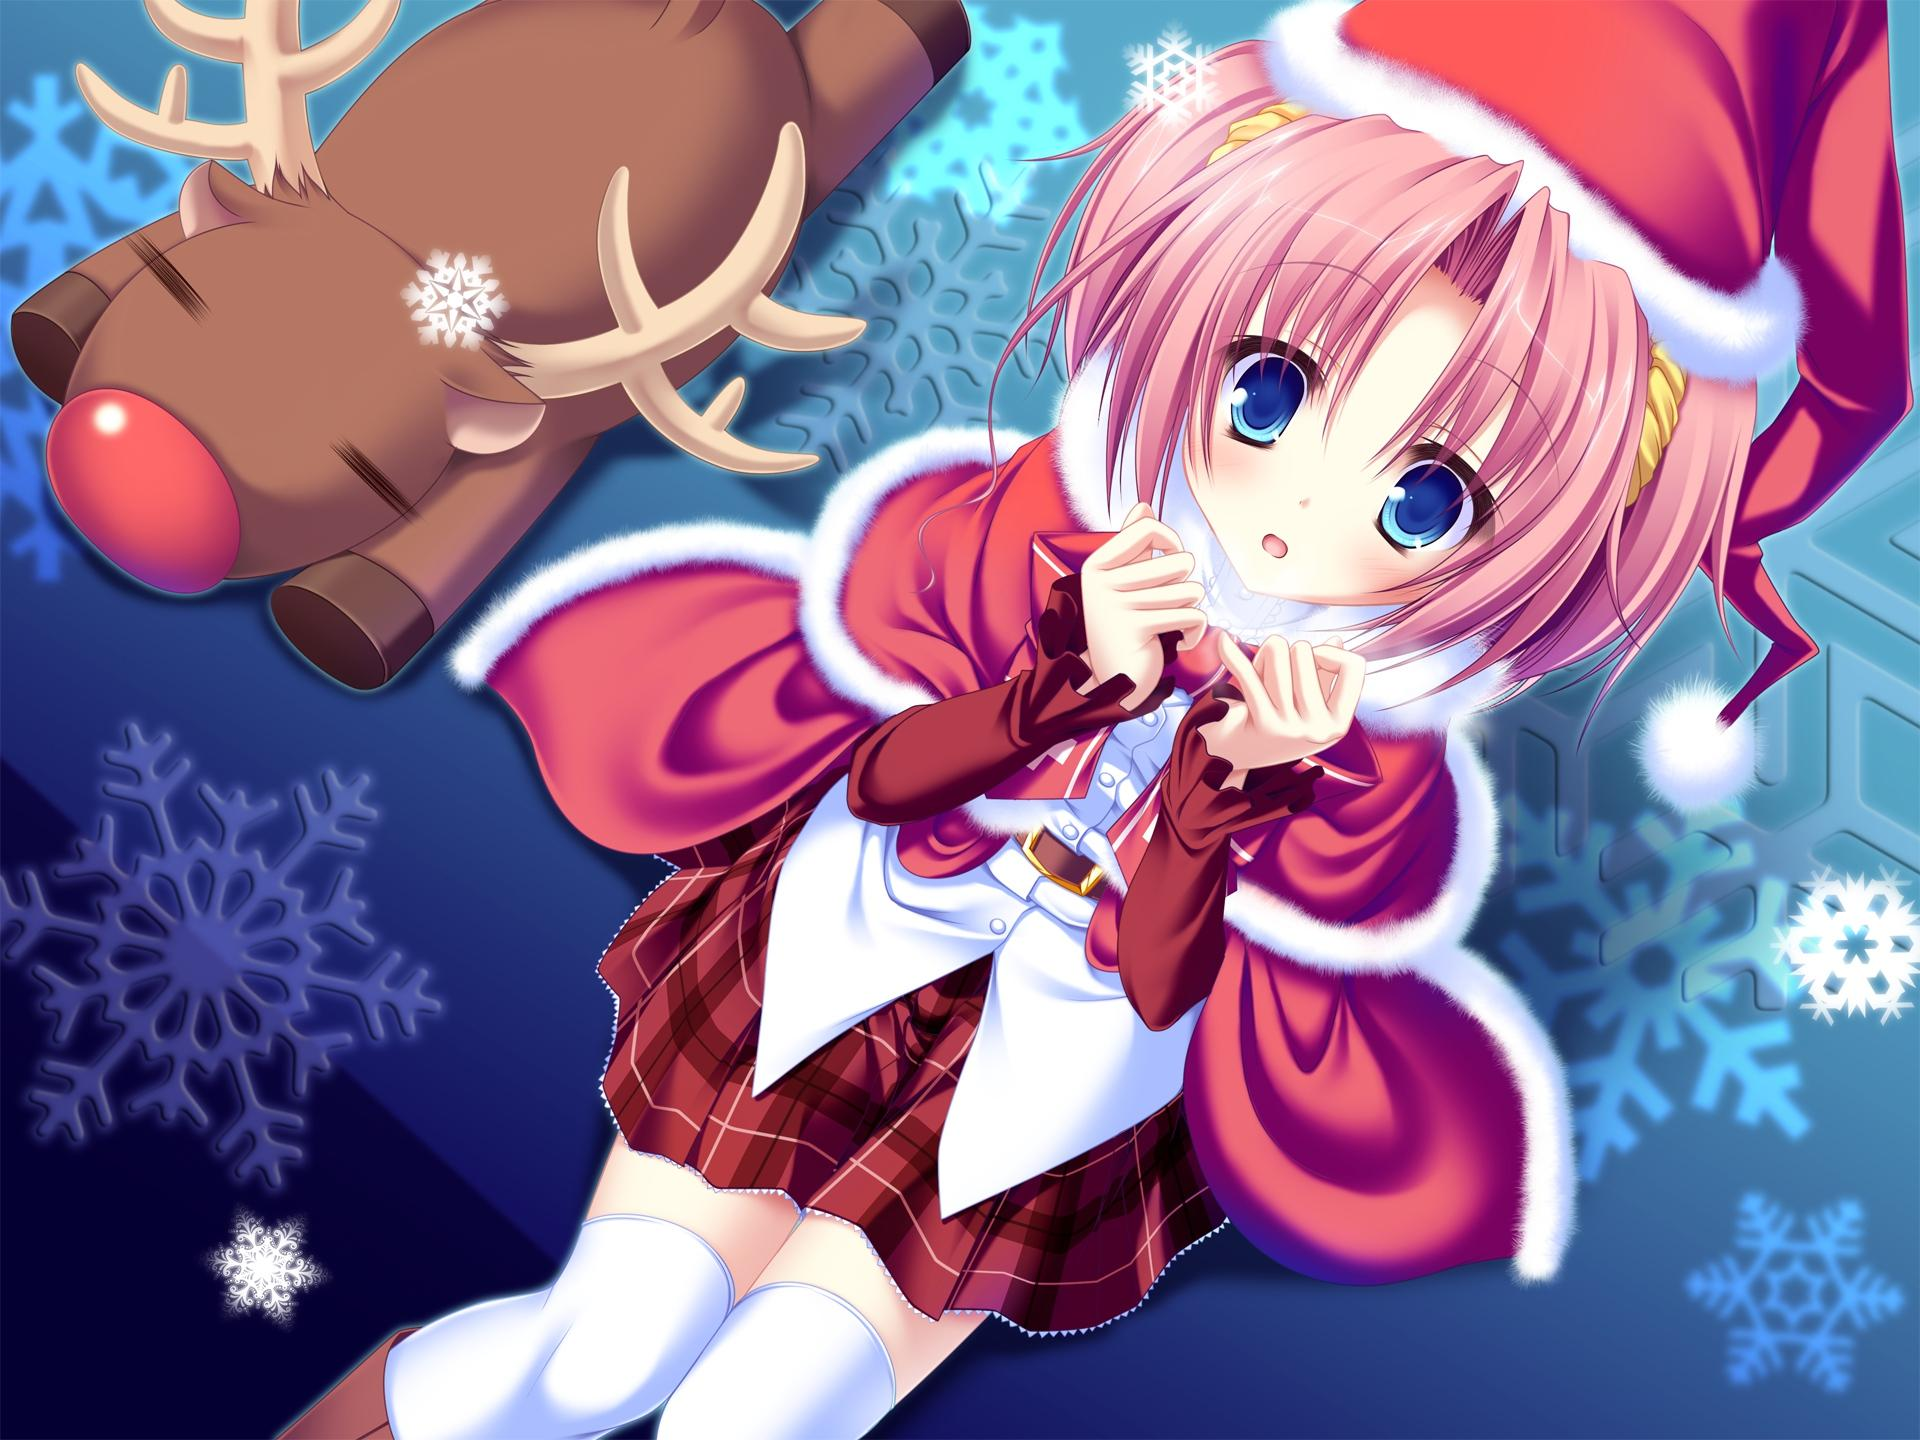 Anime Loli Natal Hd Wallpapers Wallpaper Cave